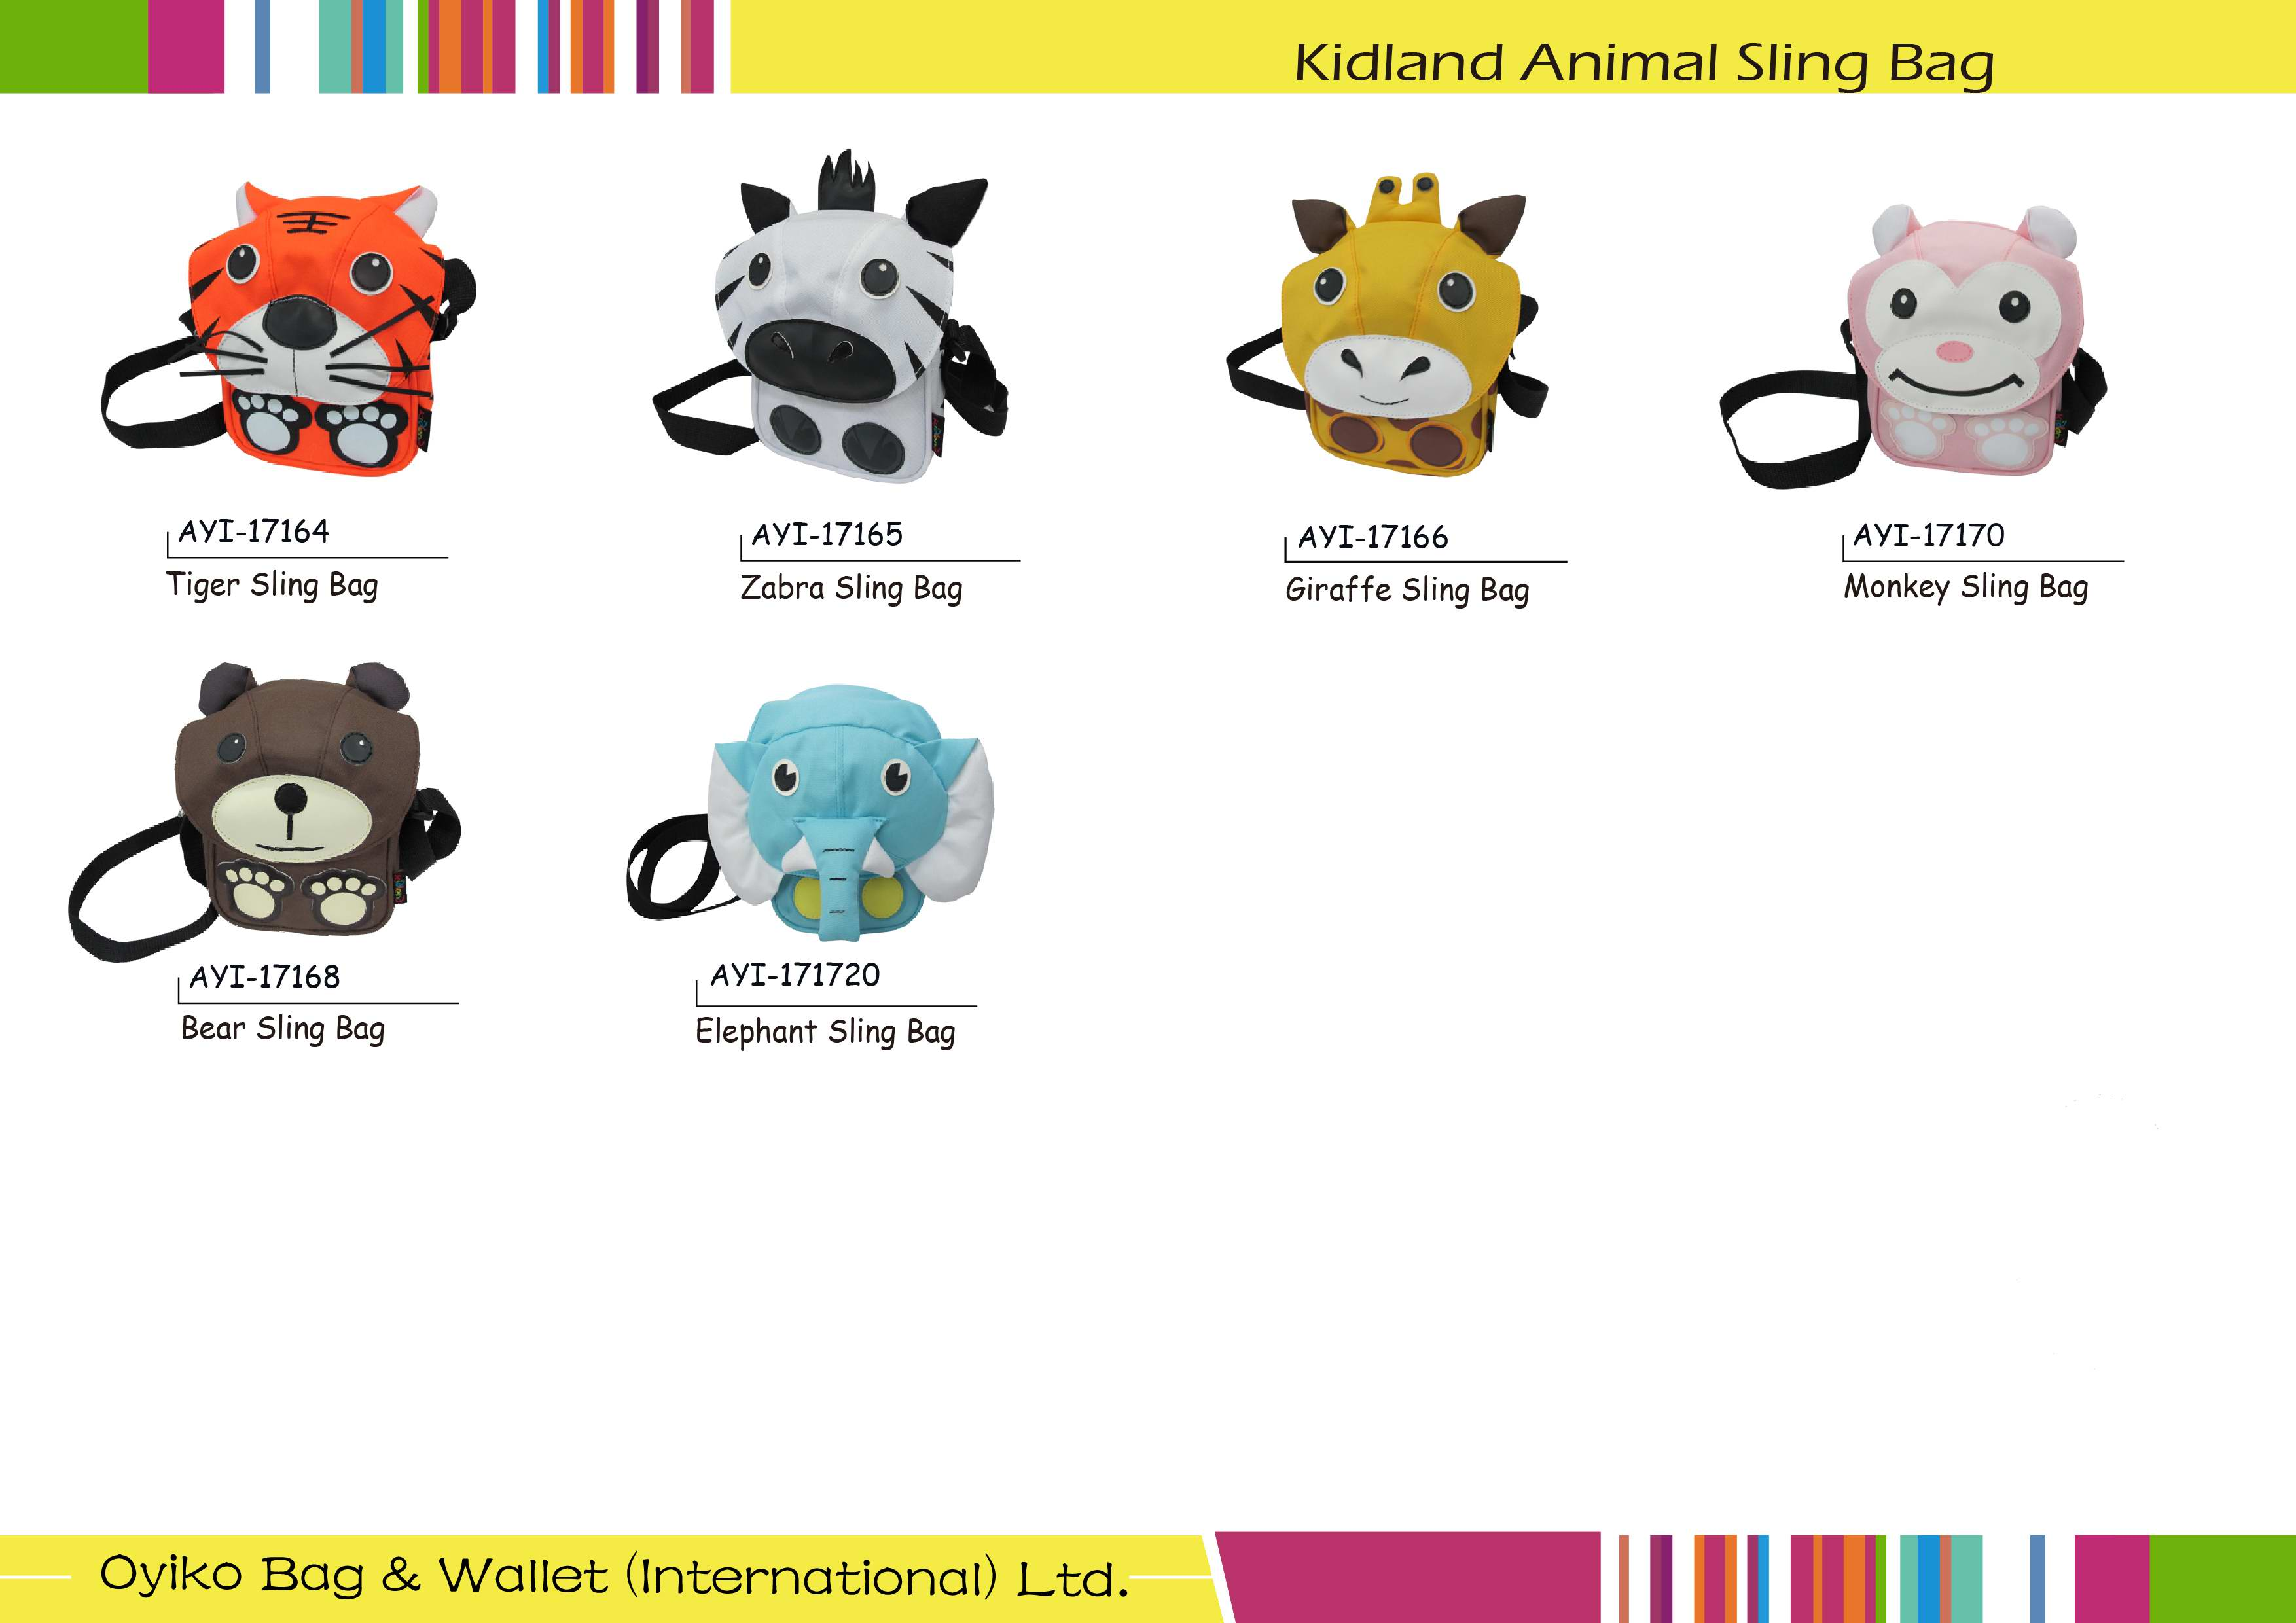 Kidland Animal Sling  Bag  OYIKO-01.jpg